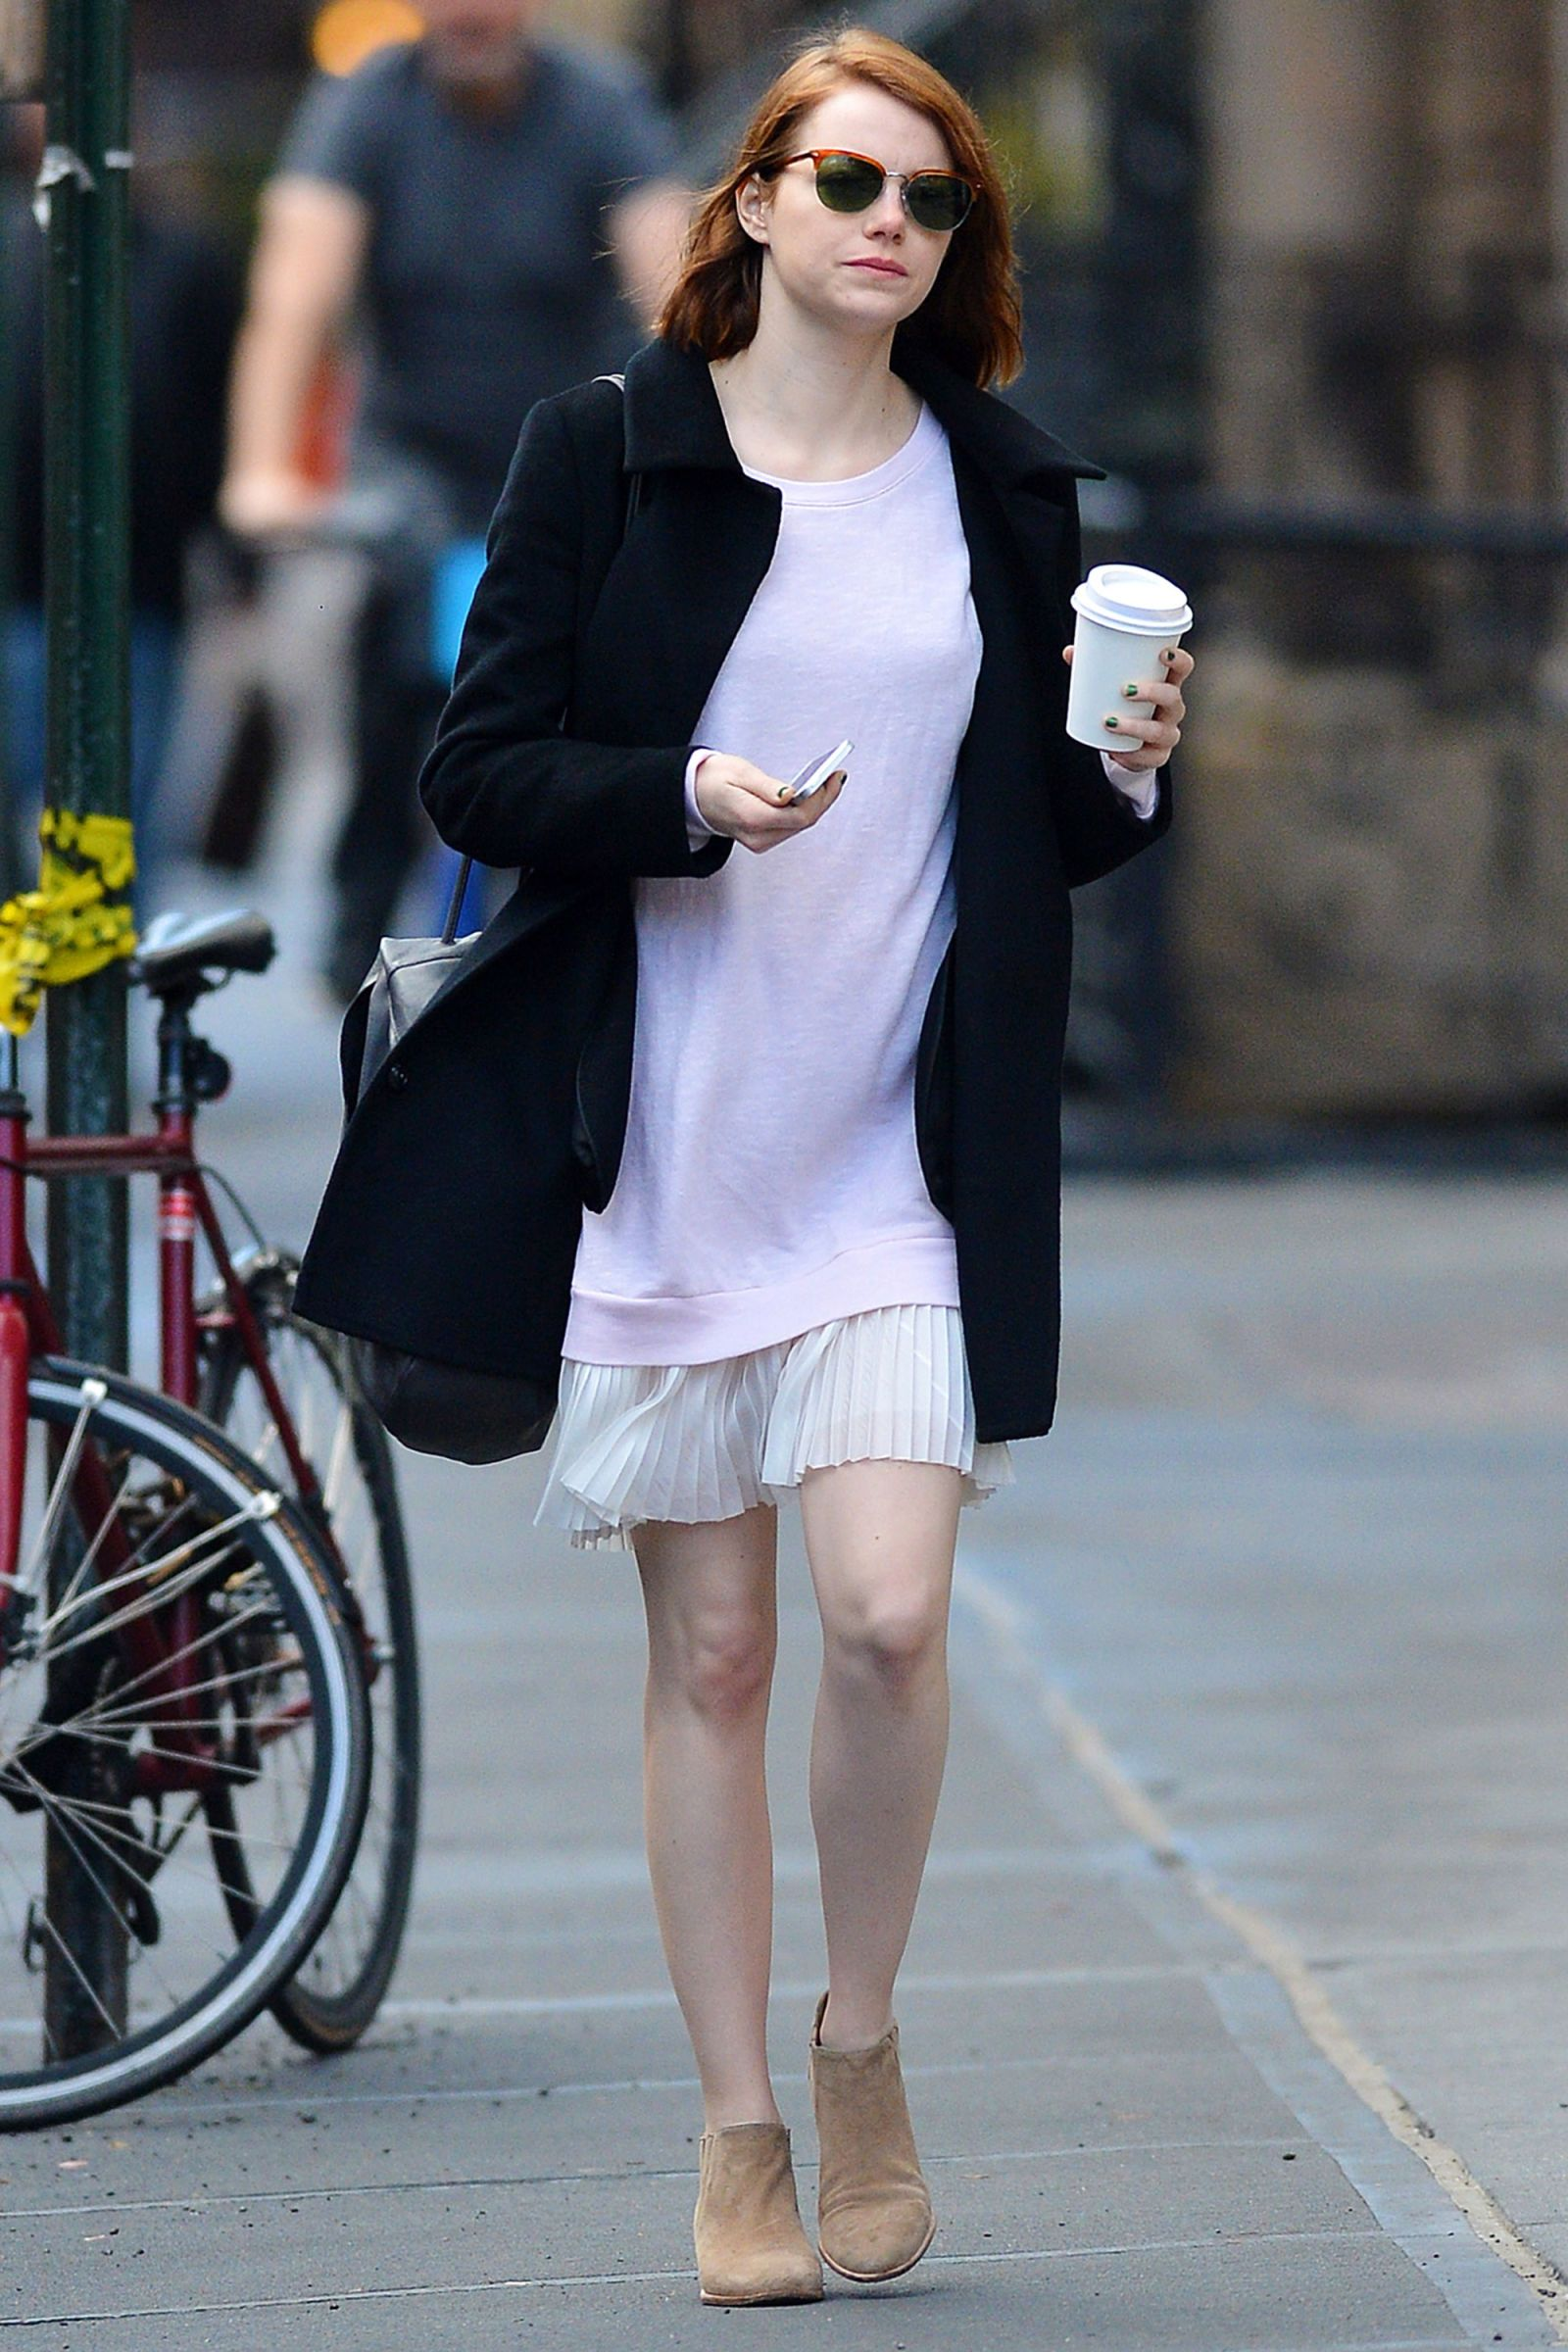 Emma Stone drinks coffee in New York City's West Village neighborhood on on Nov. 24, 2014.